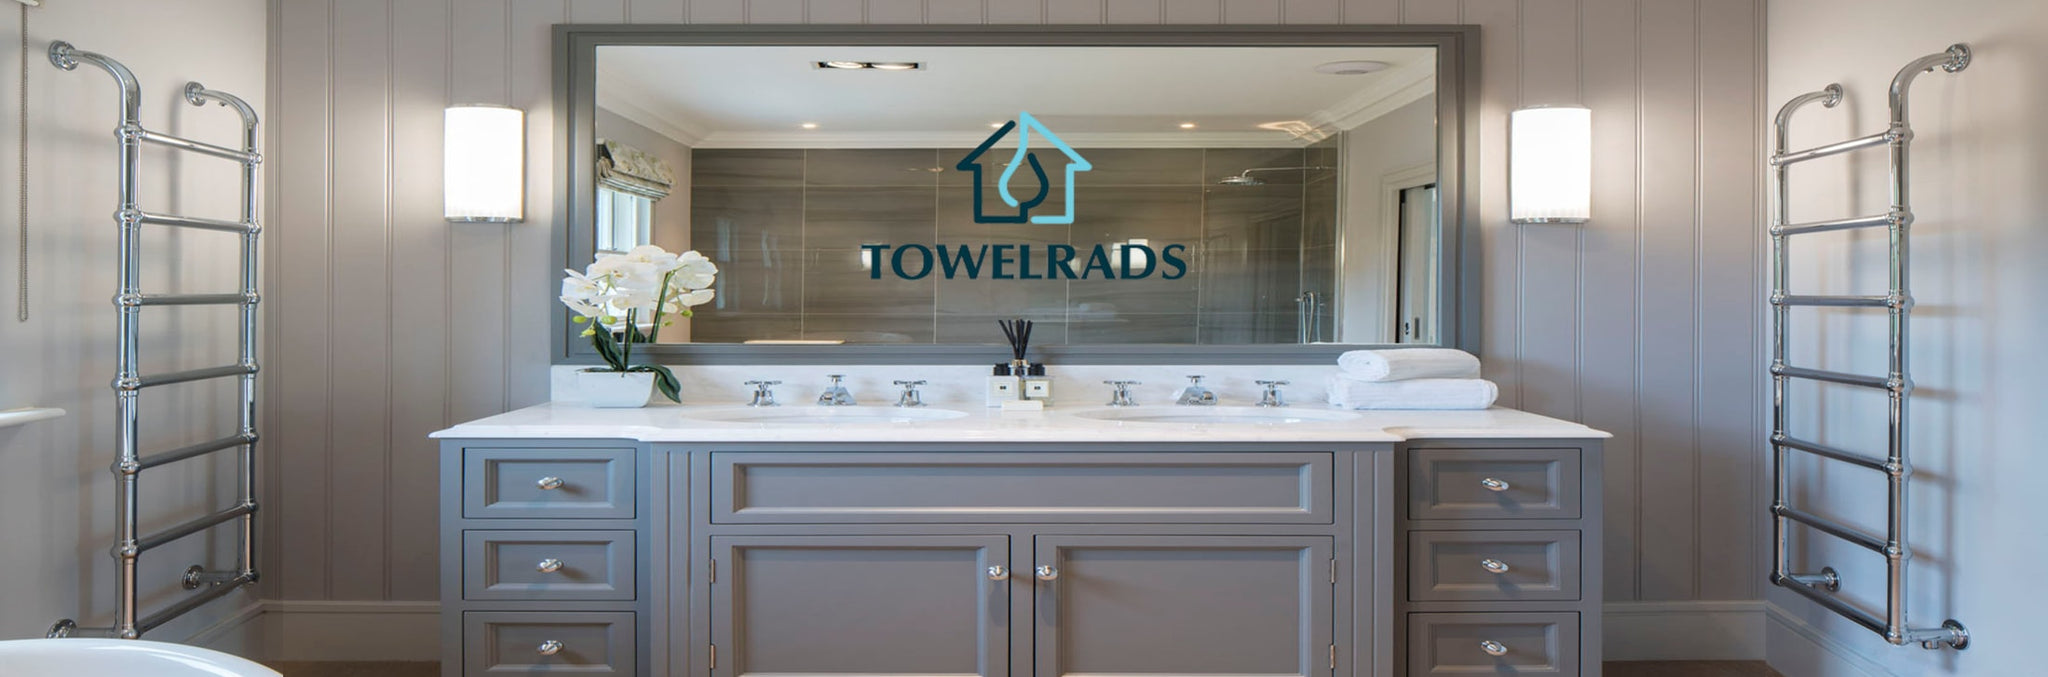 Towelrads Radiators Towel Rails banner